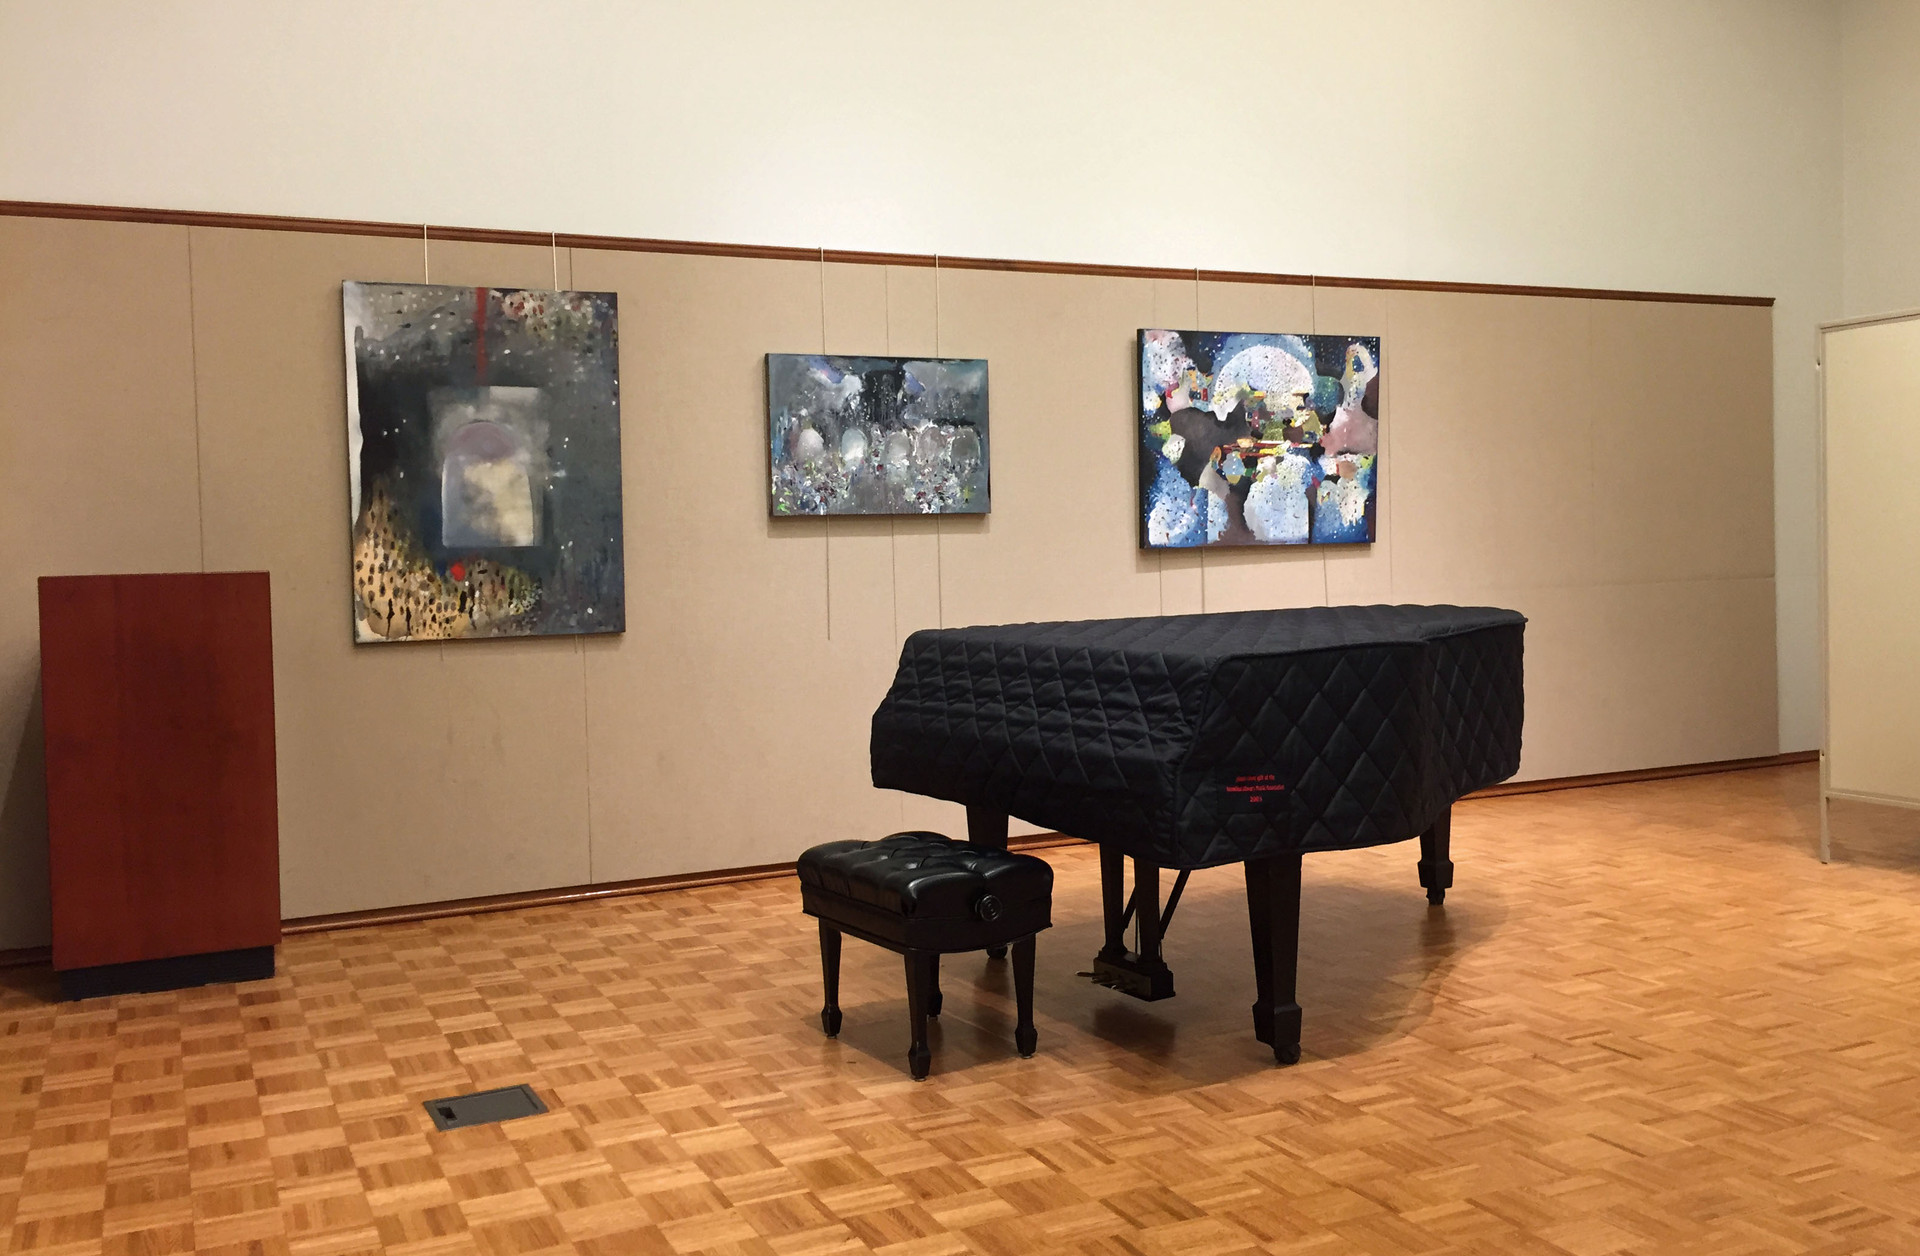 Solo Show at Brookline Public Library